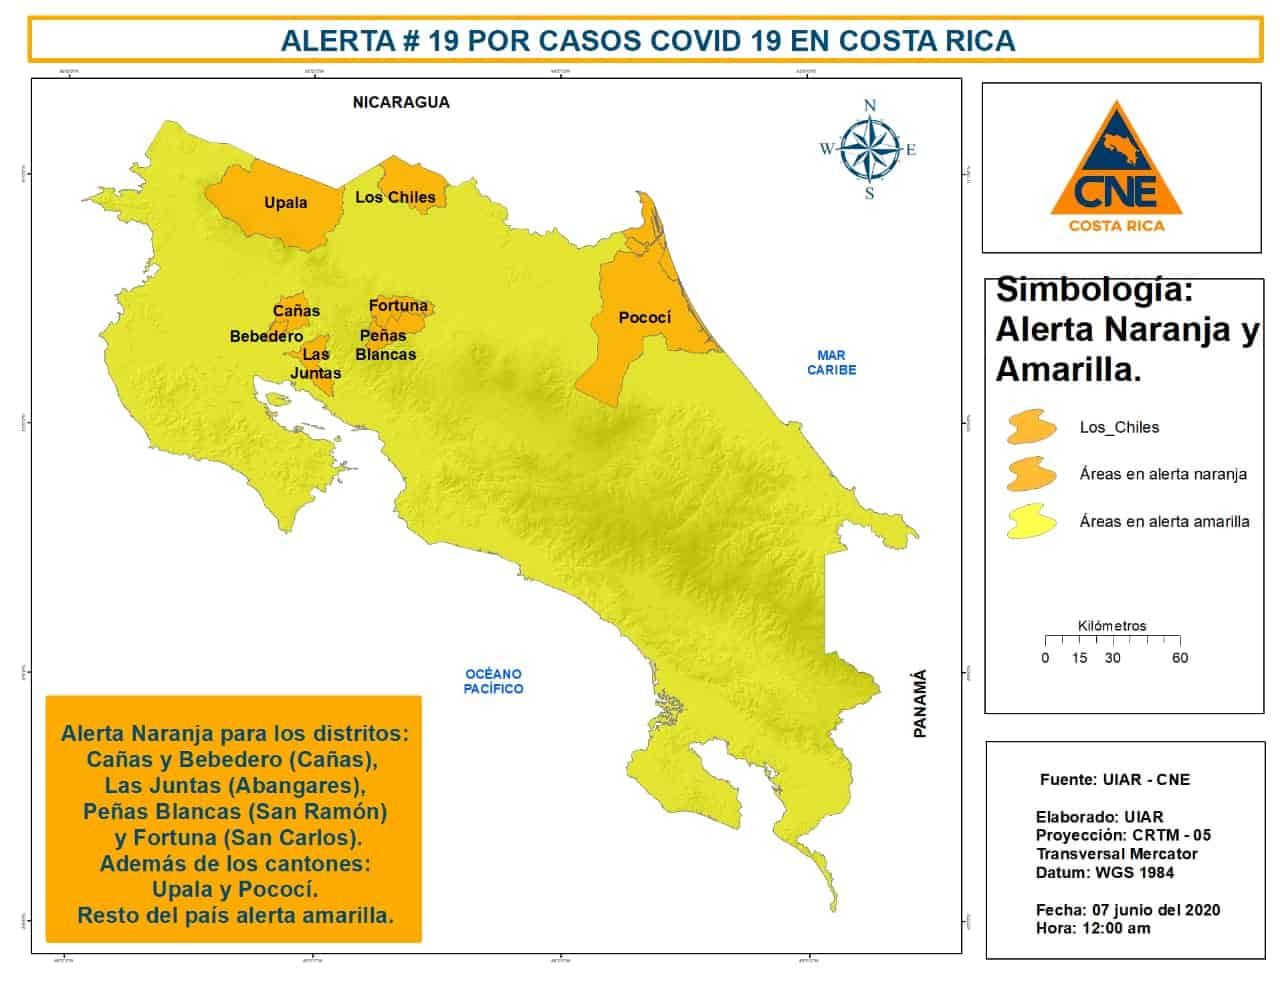 A map showing areas of Costa Rica under an orange alert due to the coronavirus.